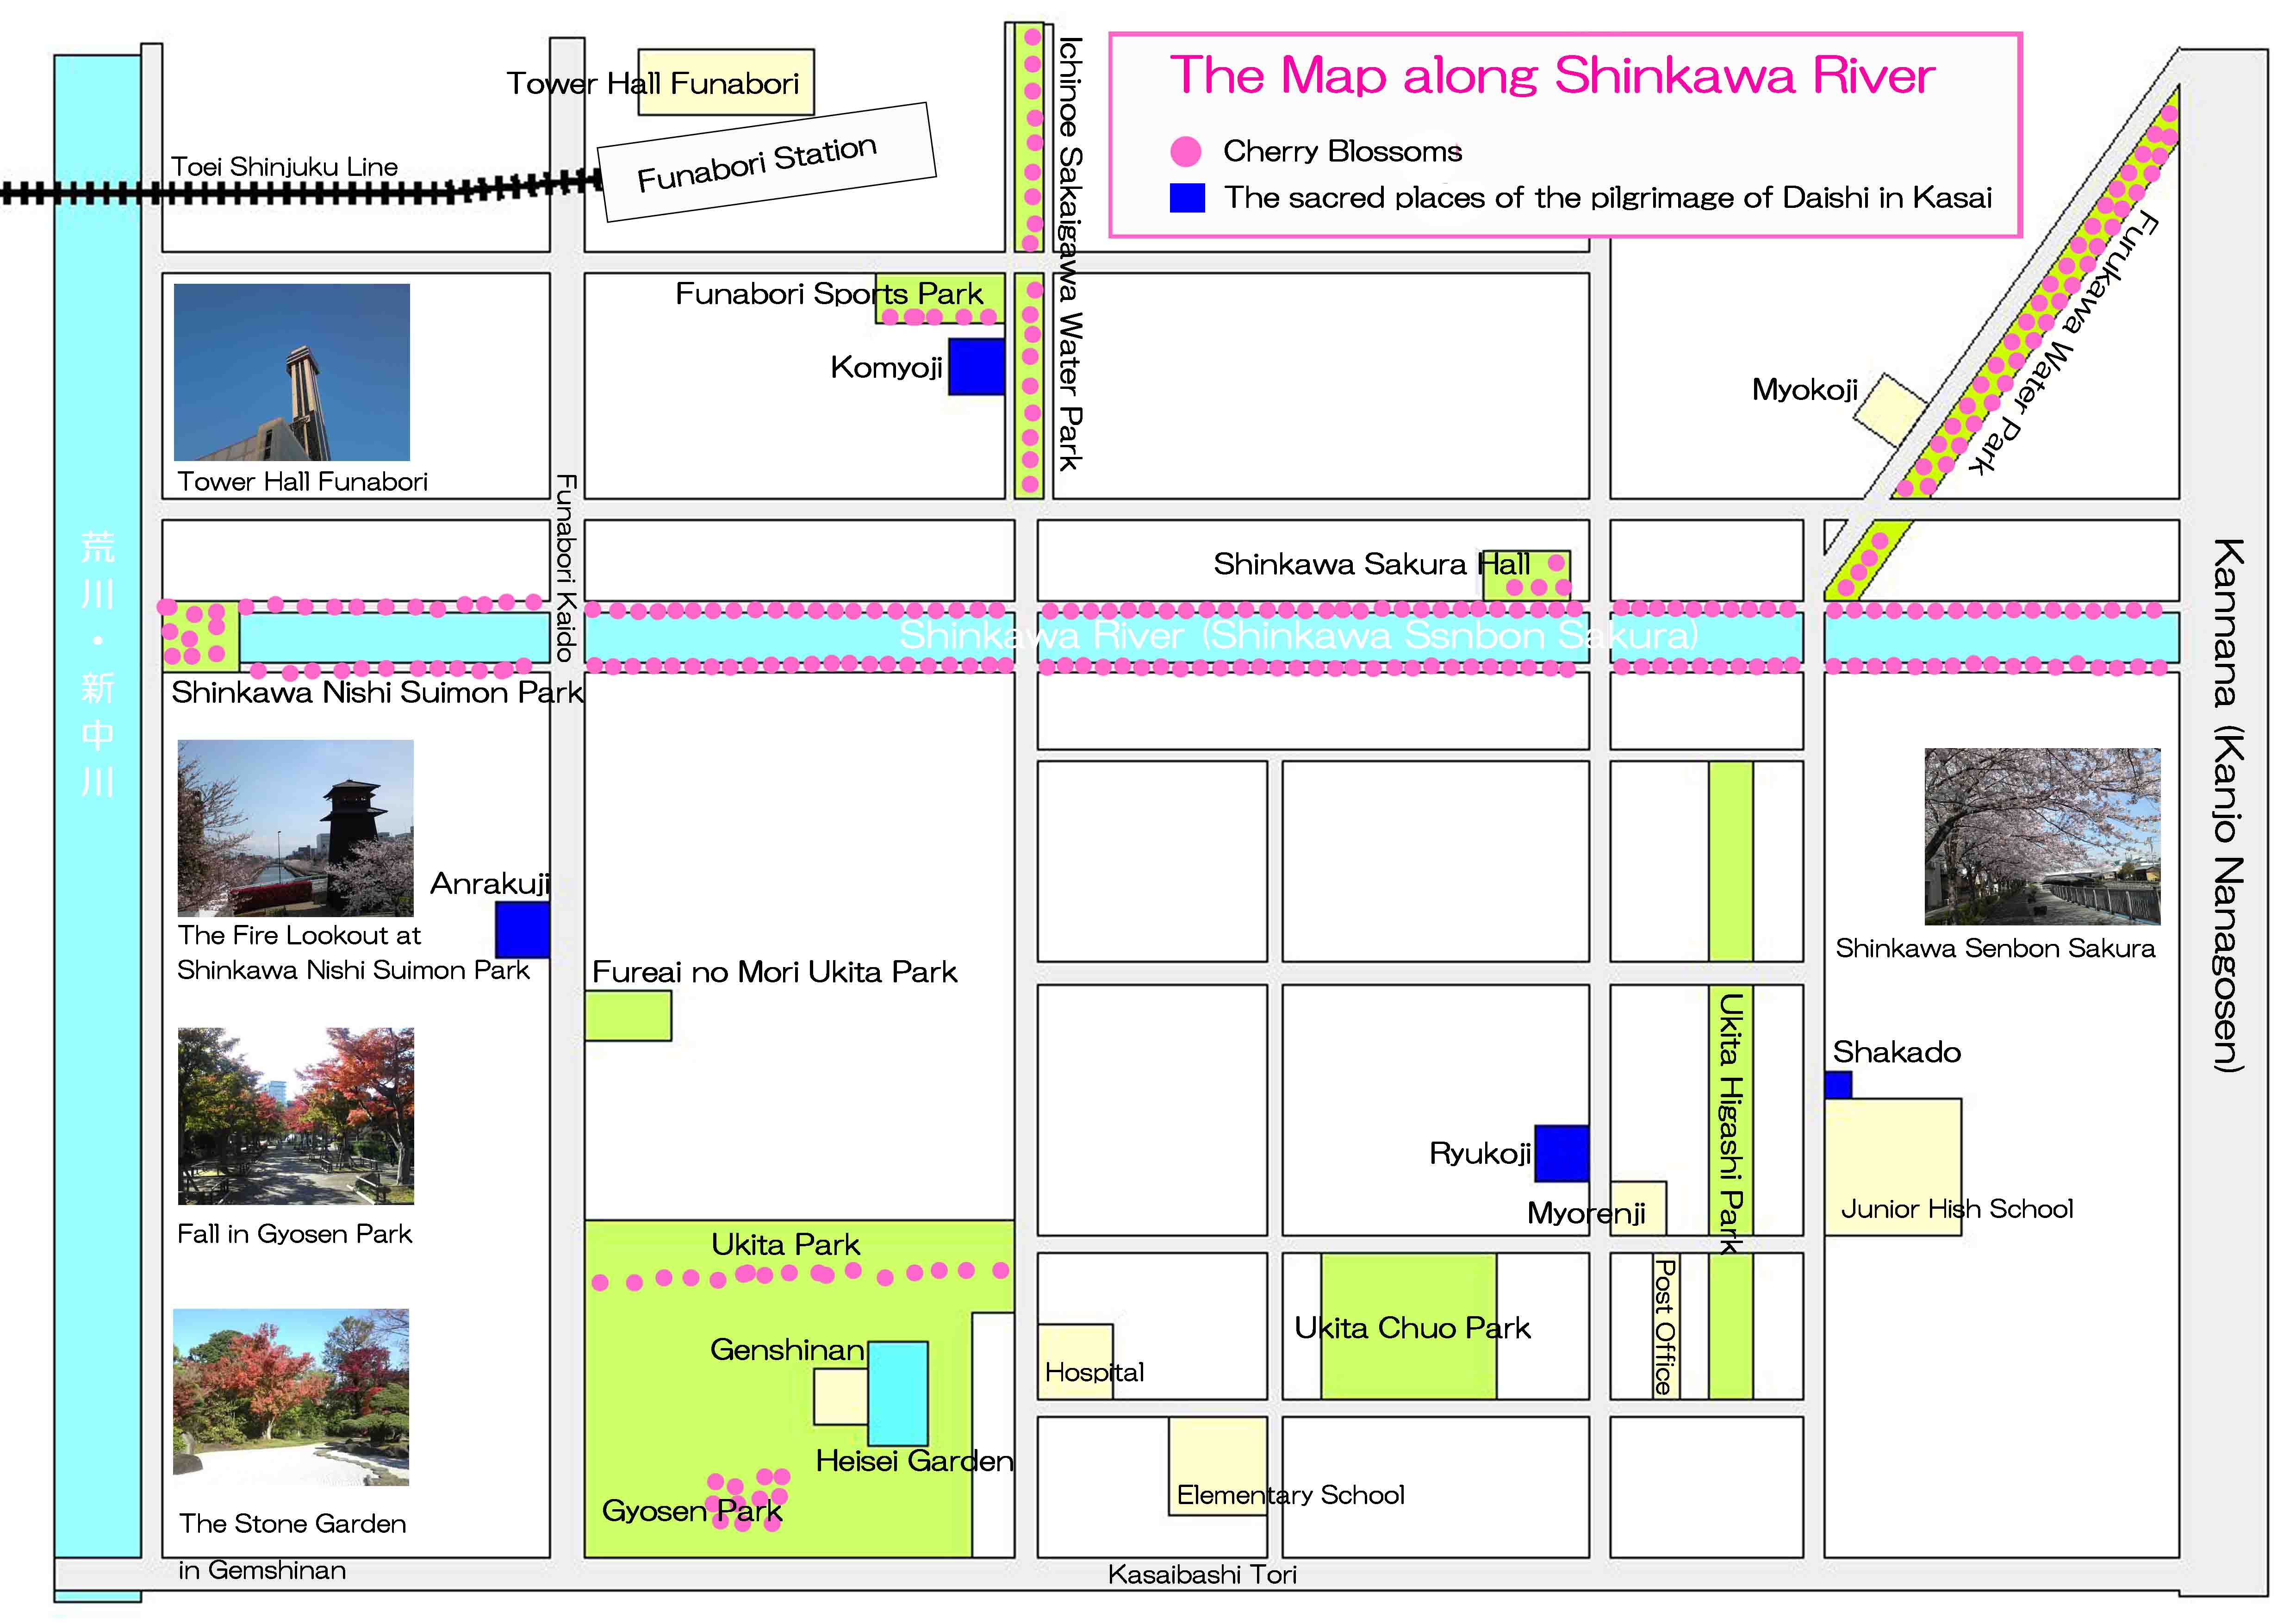 the map along Shinkawa Senbon Sakura